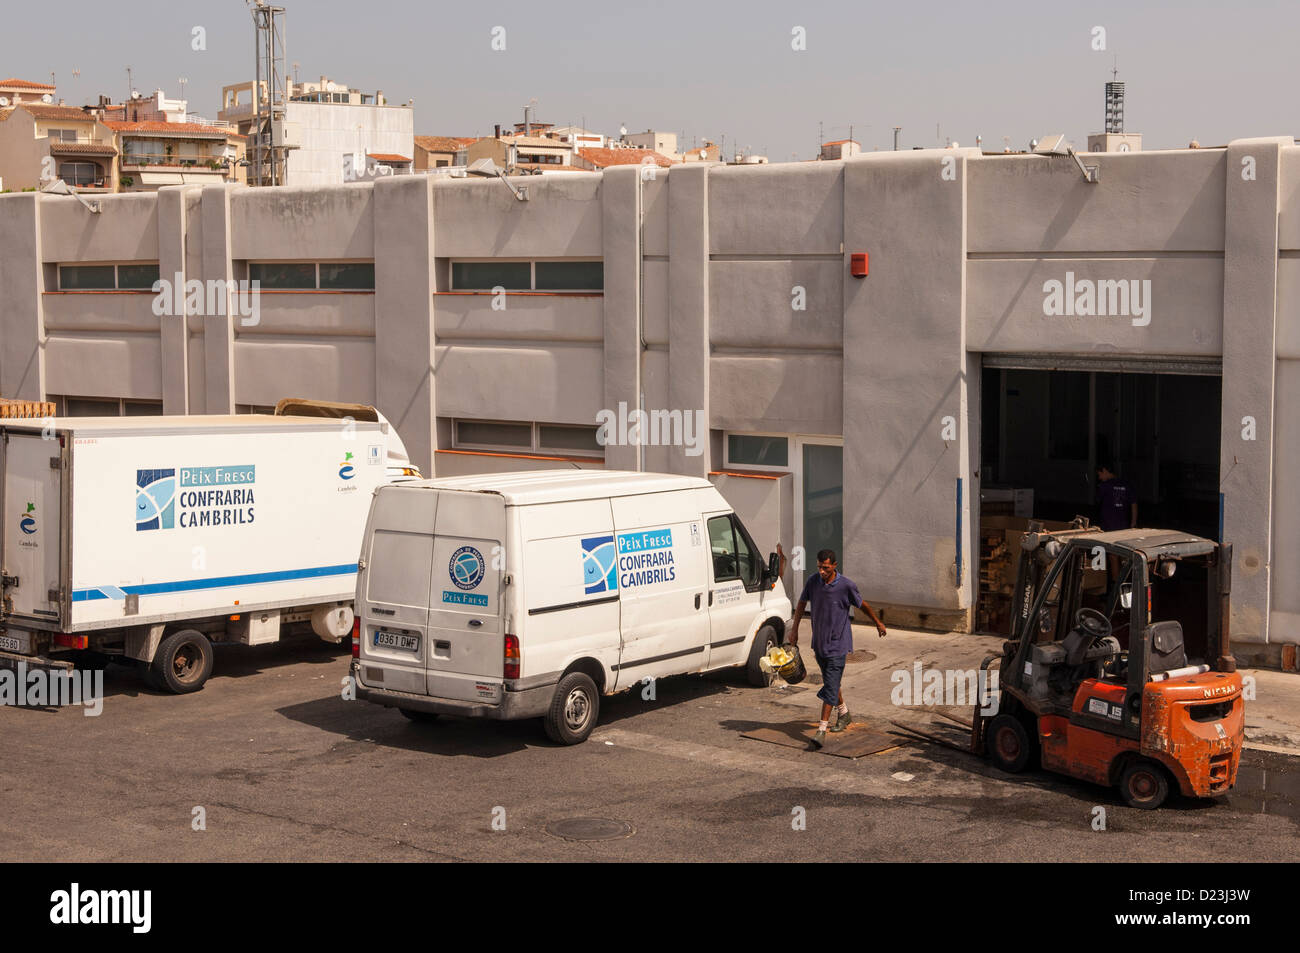 Men at work in the fishing industry in the fishing port of Cambrils , Costa Dorada , Spain - Stock Image